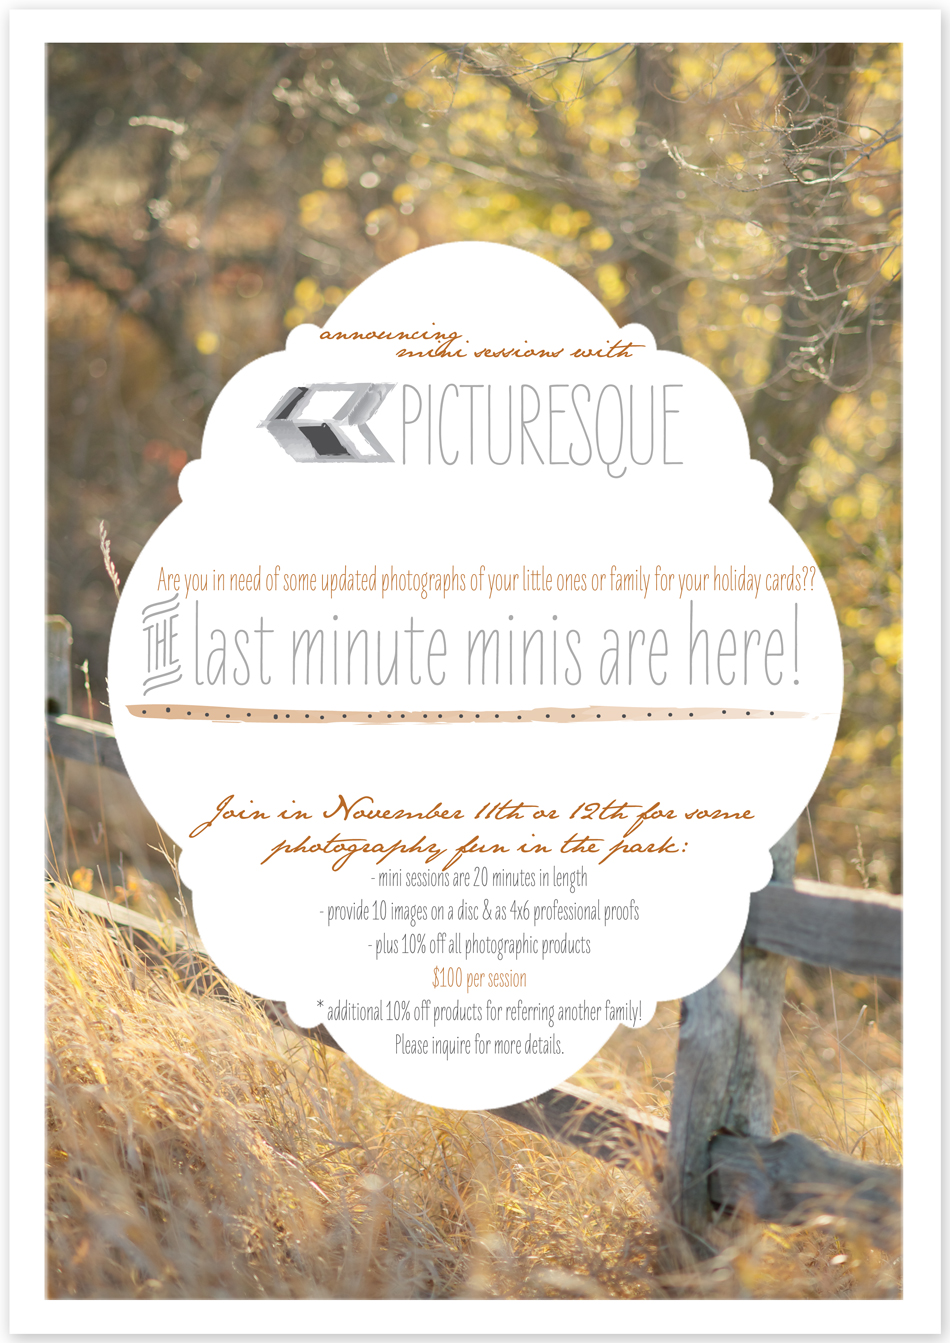 Sioux Falls photographer Lauren Neff of picturesque offering mini photo sessions